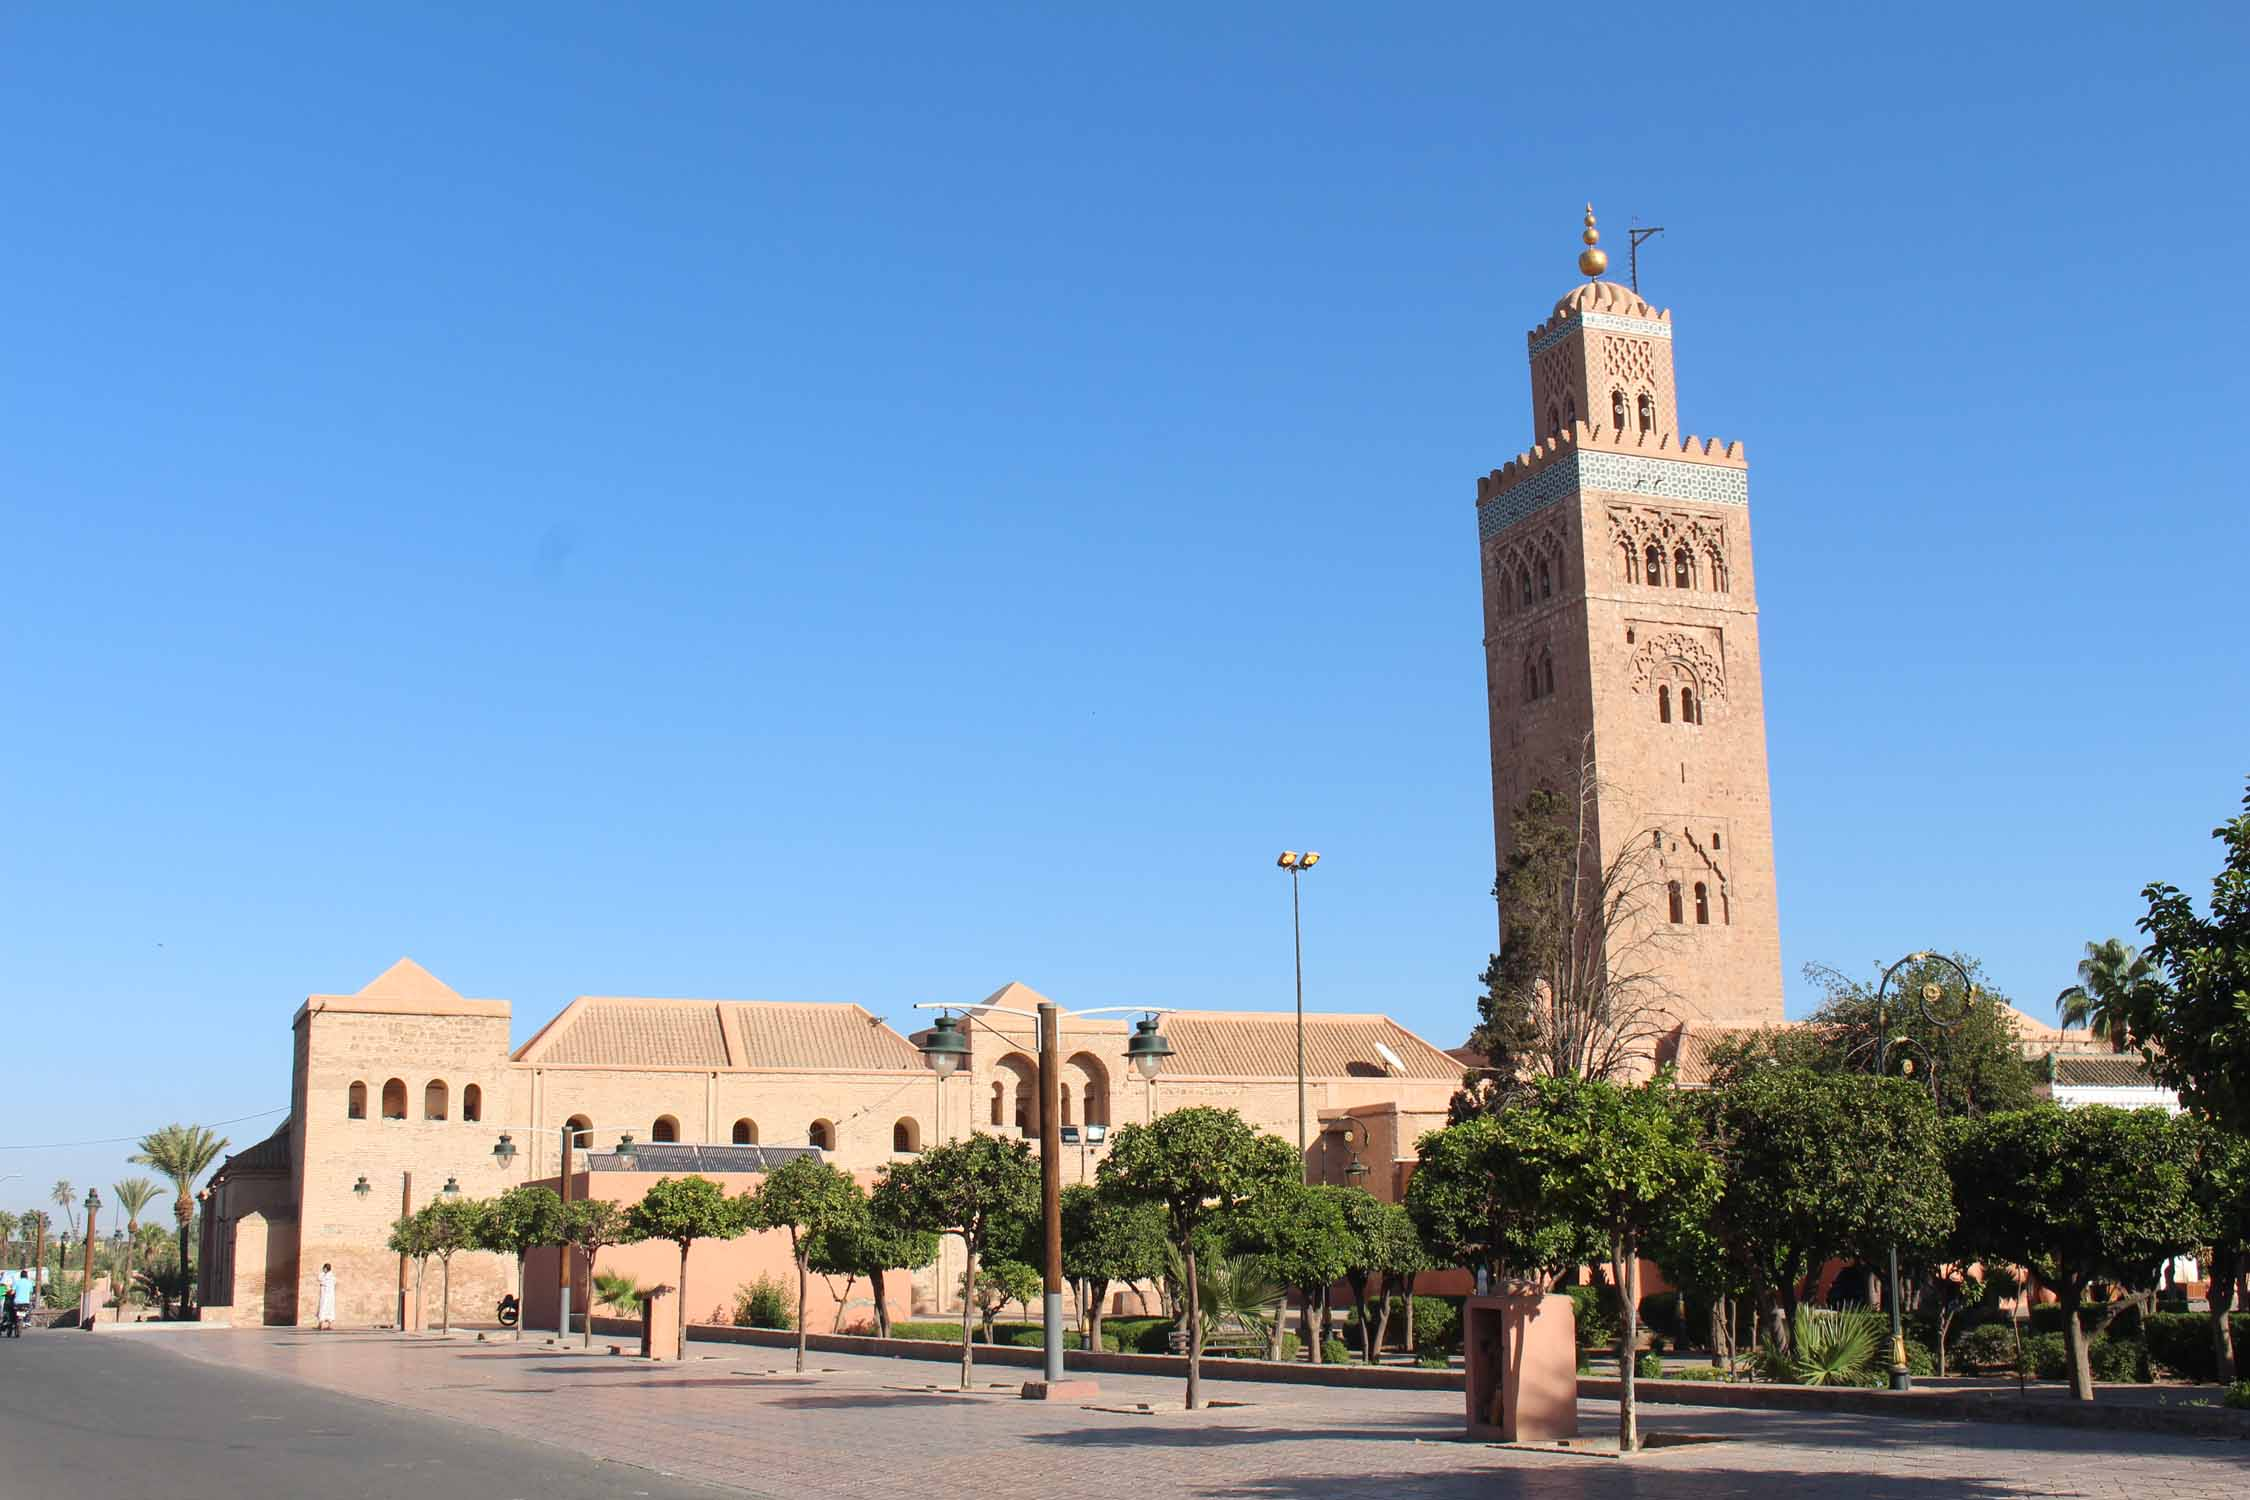 Marrakesh, Koutoubia mosque